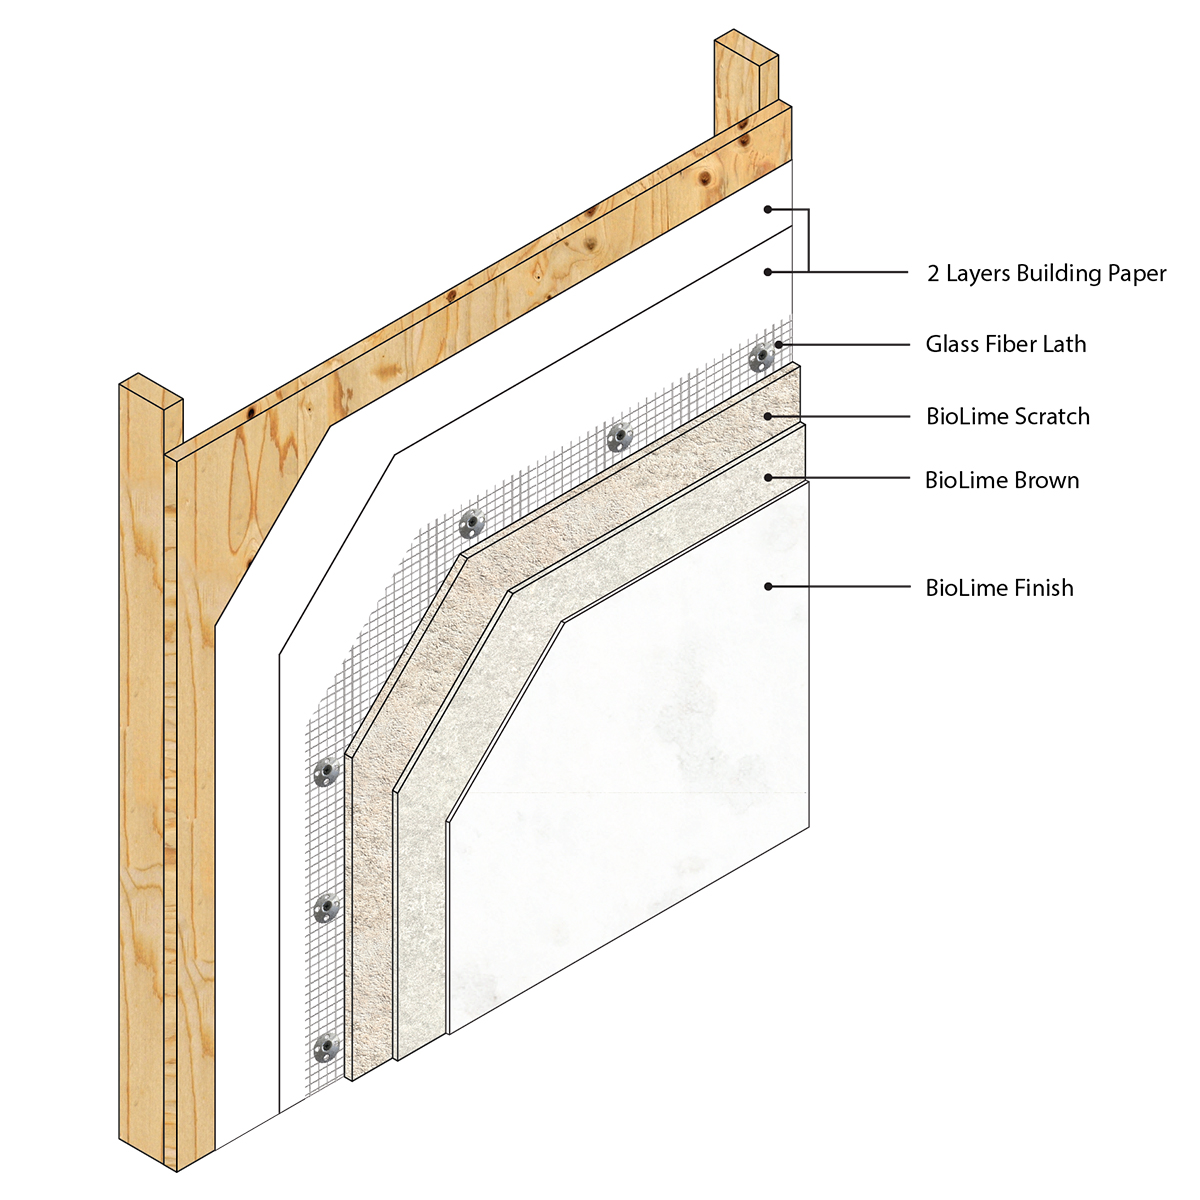 Isometric view of Wood Sheathing BioLime System